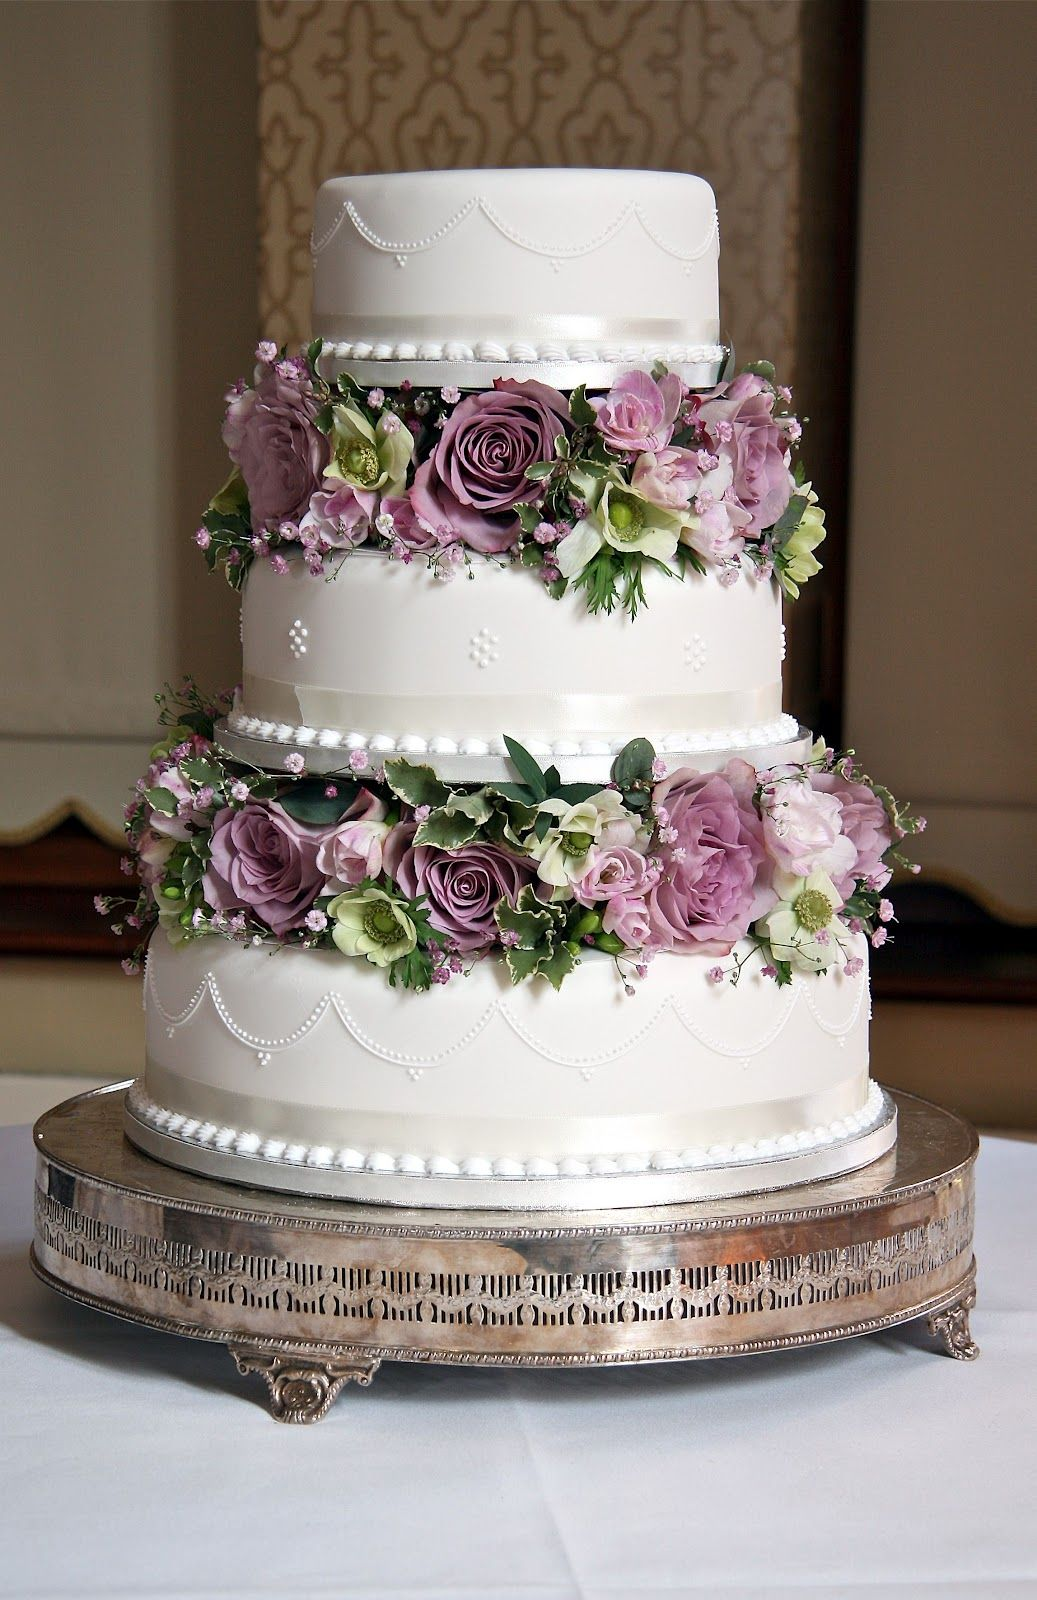 Wedding Cakes Decor Flowers And Bling Wedding Cake With Flowers